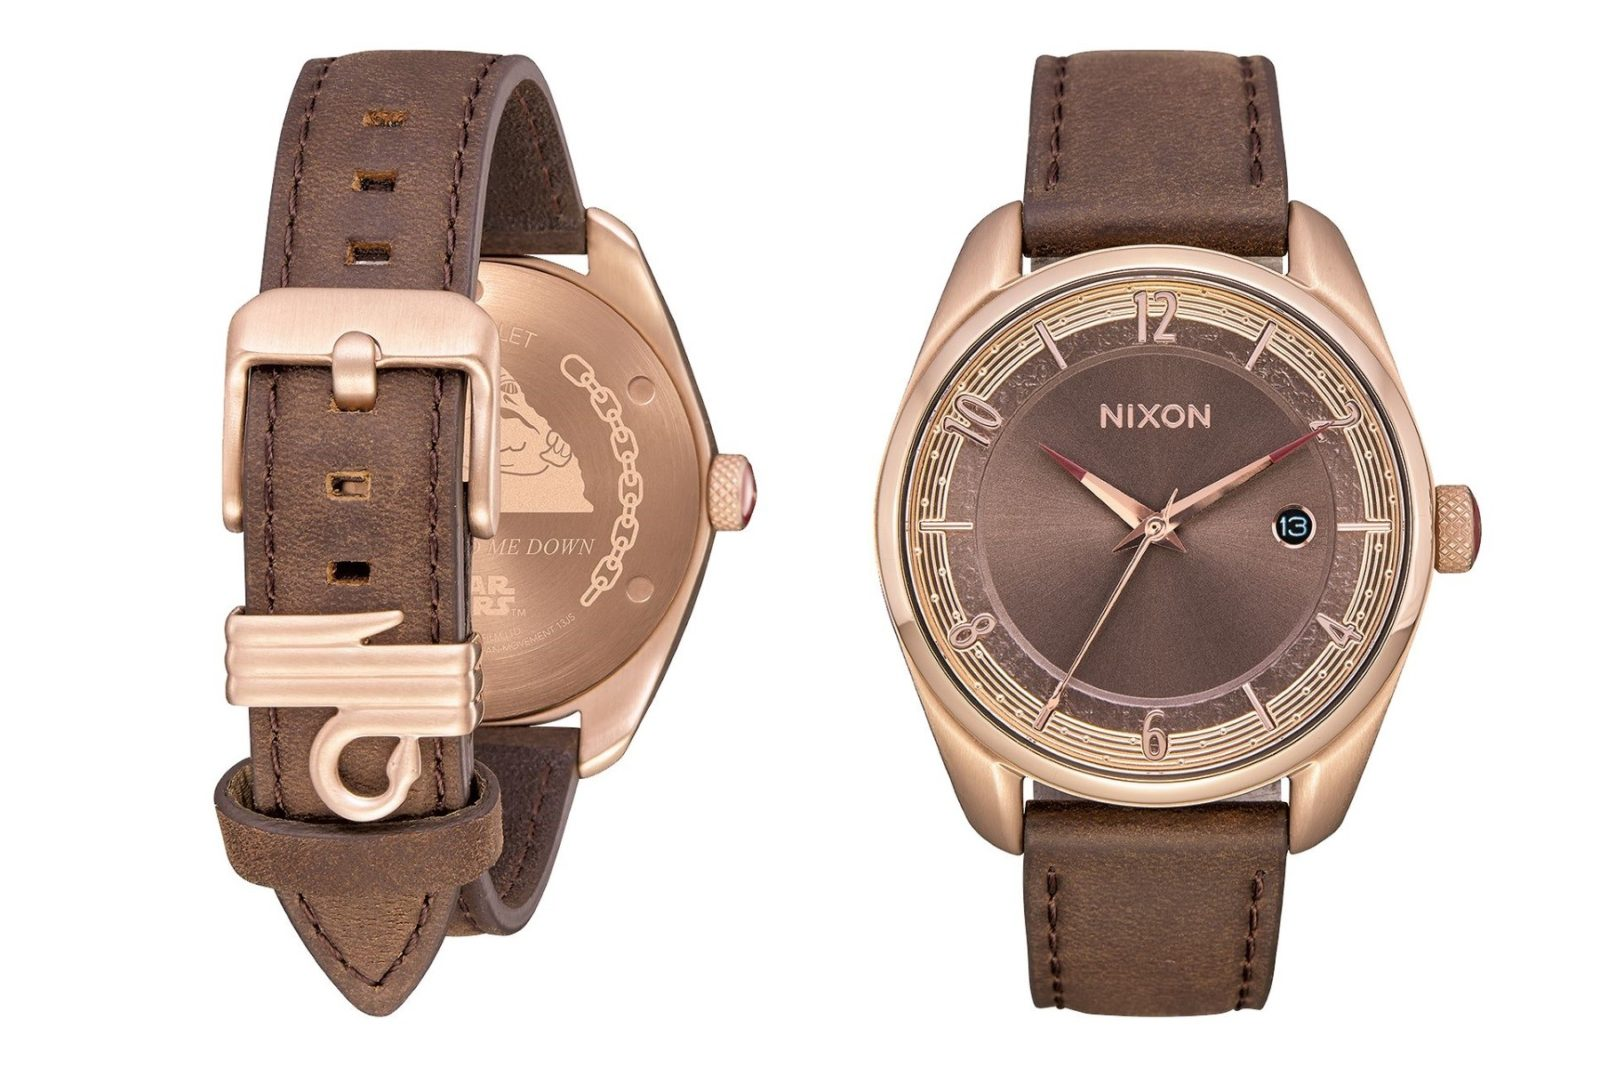 Nixon Princess Leia watch at ThinkGeek